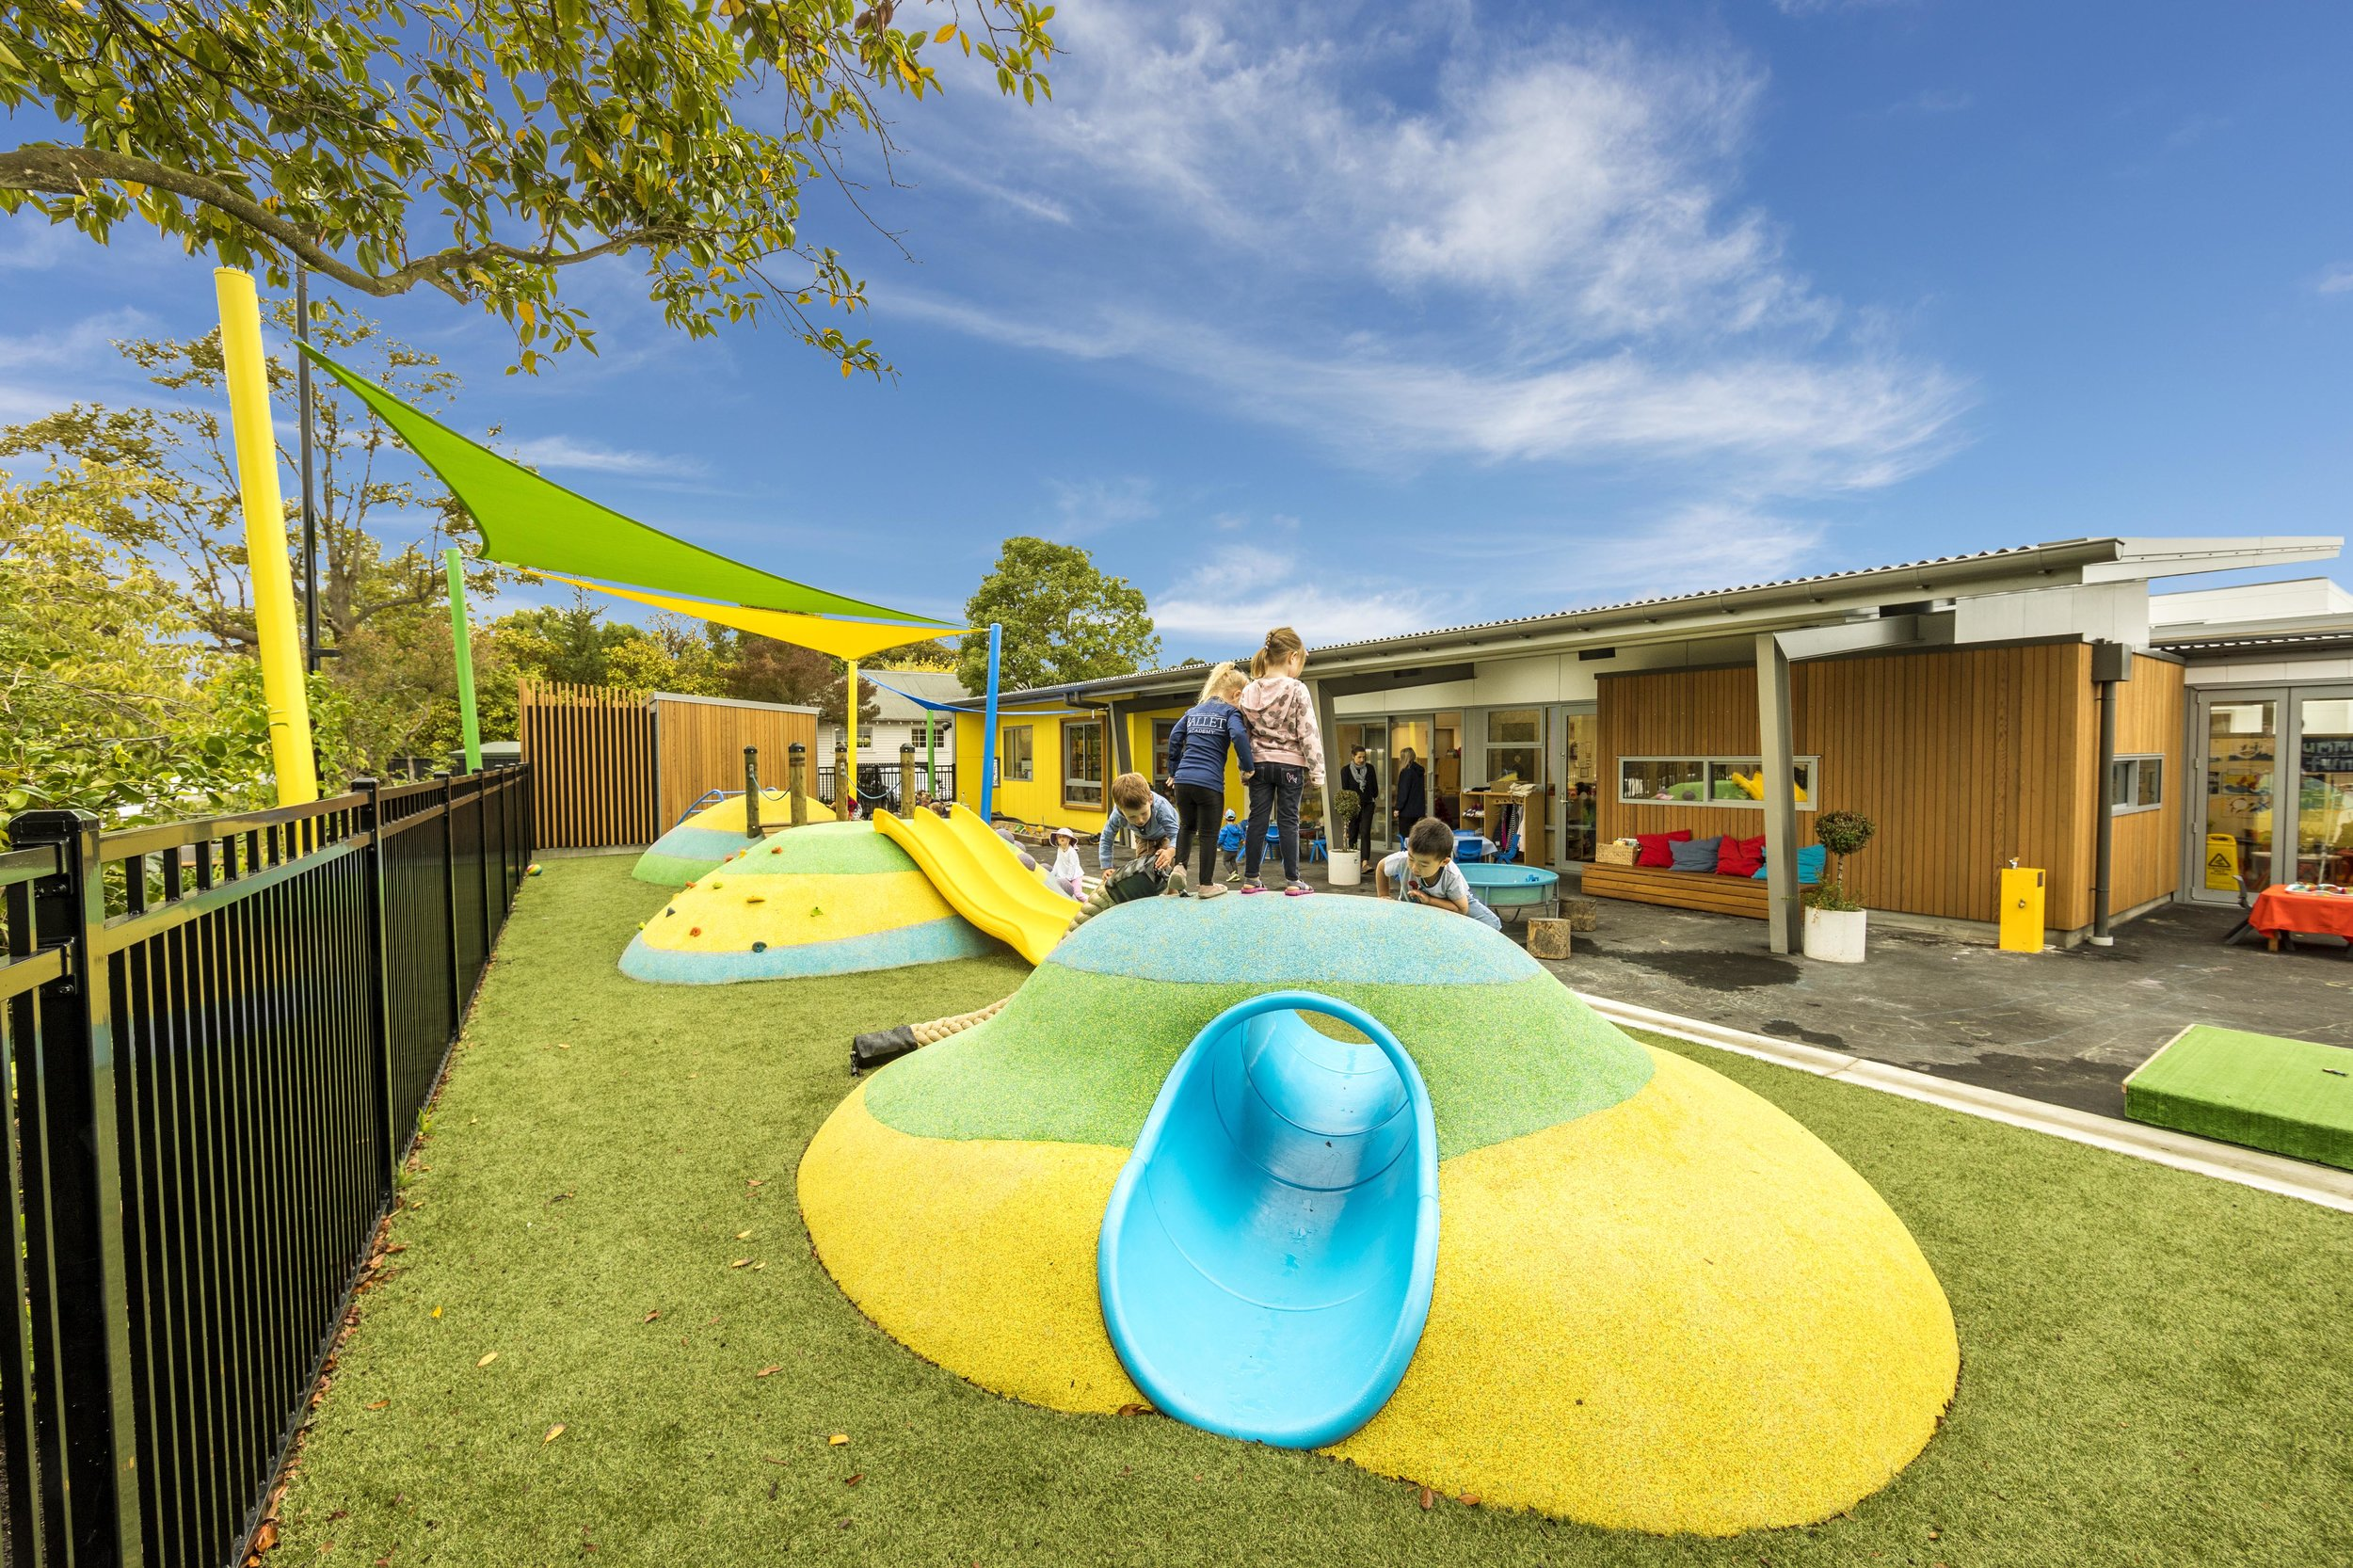 When developing the new play area for St Andrews' Stewart Junior Centre Jasmax was asked to ensure it was unique, innovative, and maximises play value.